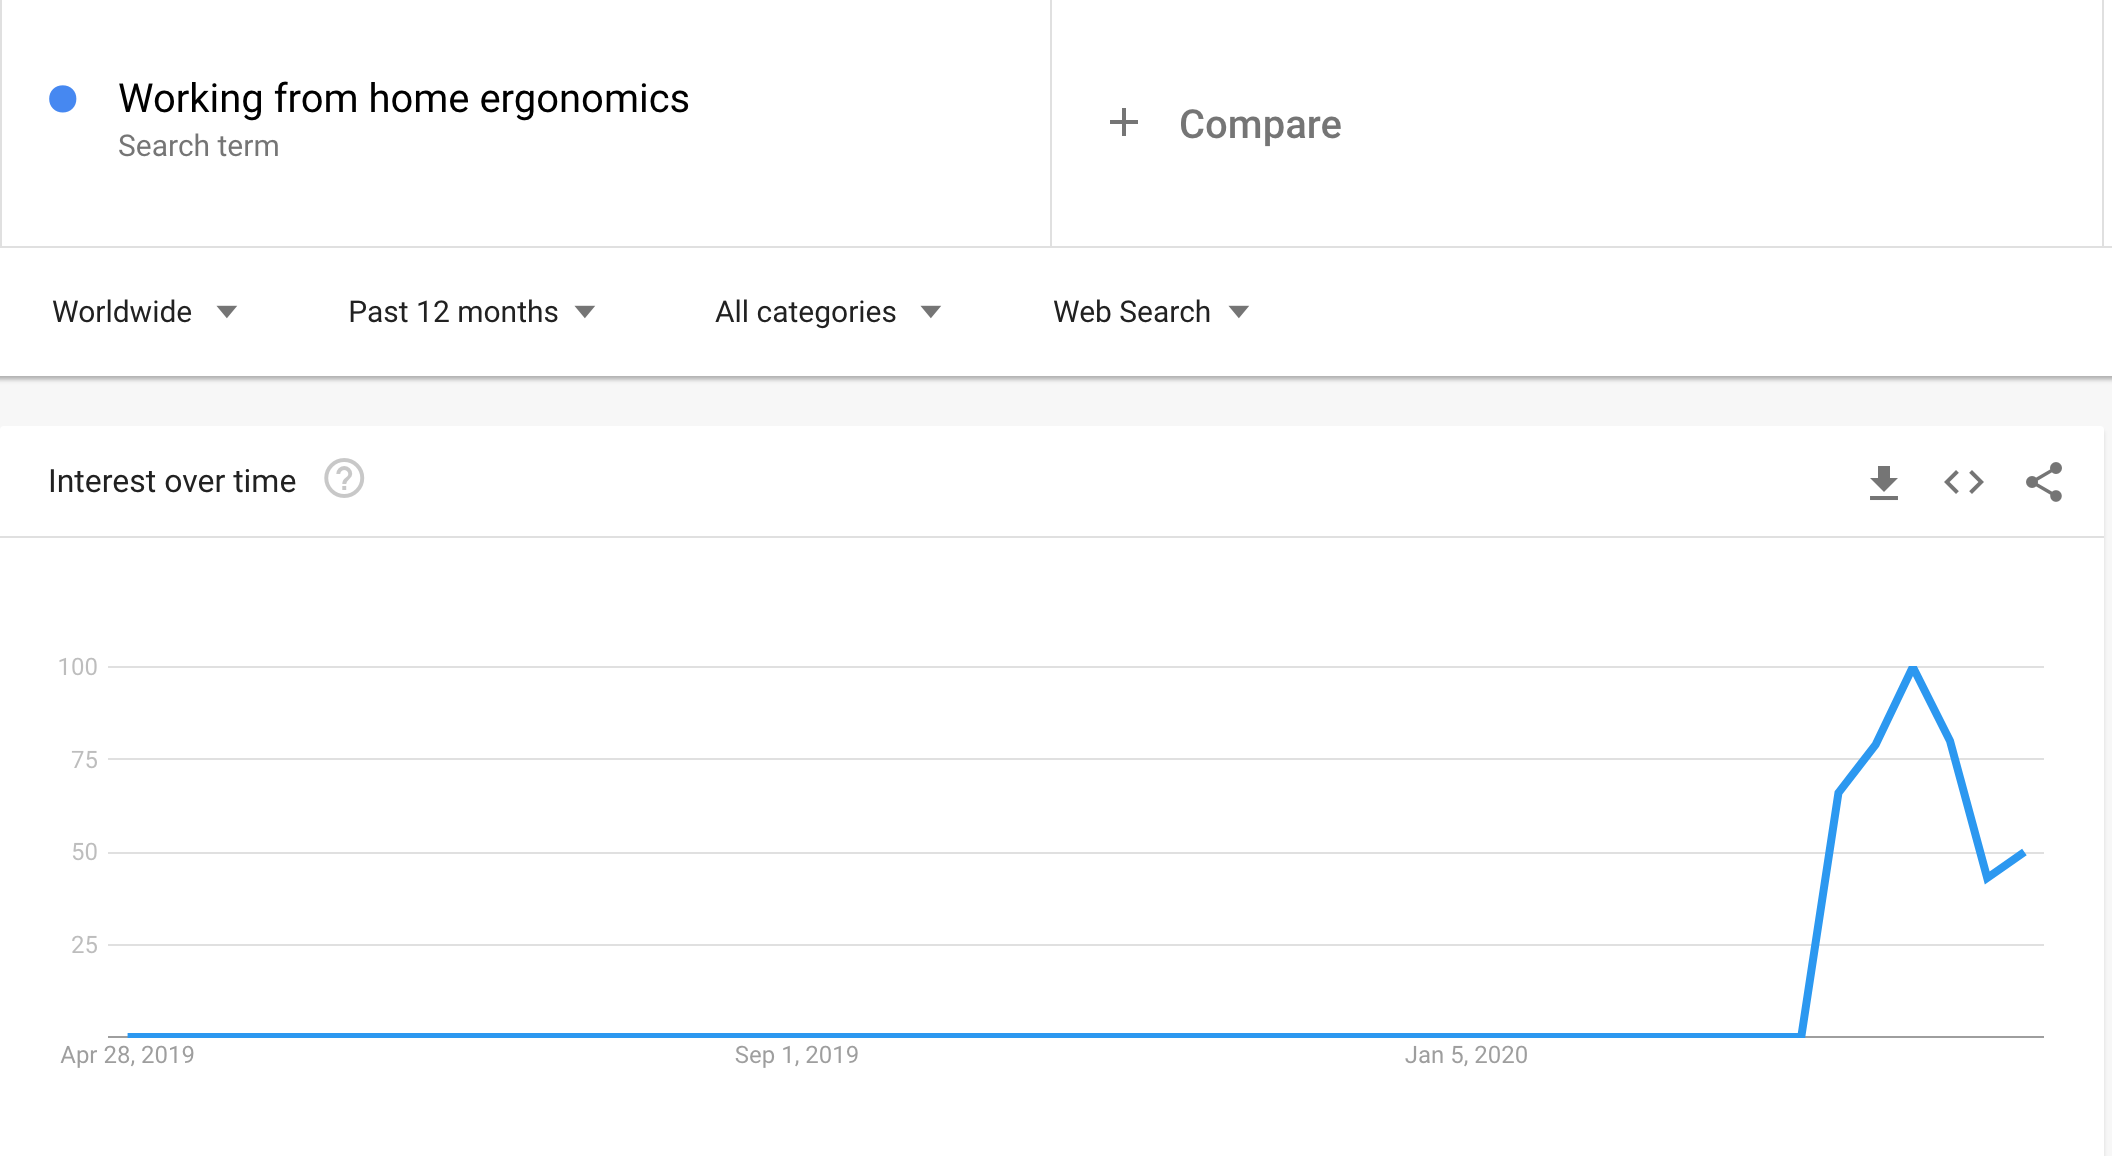 working from home ergonomics search volume